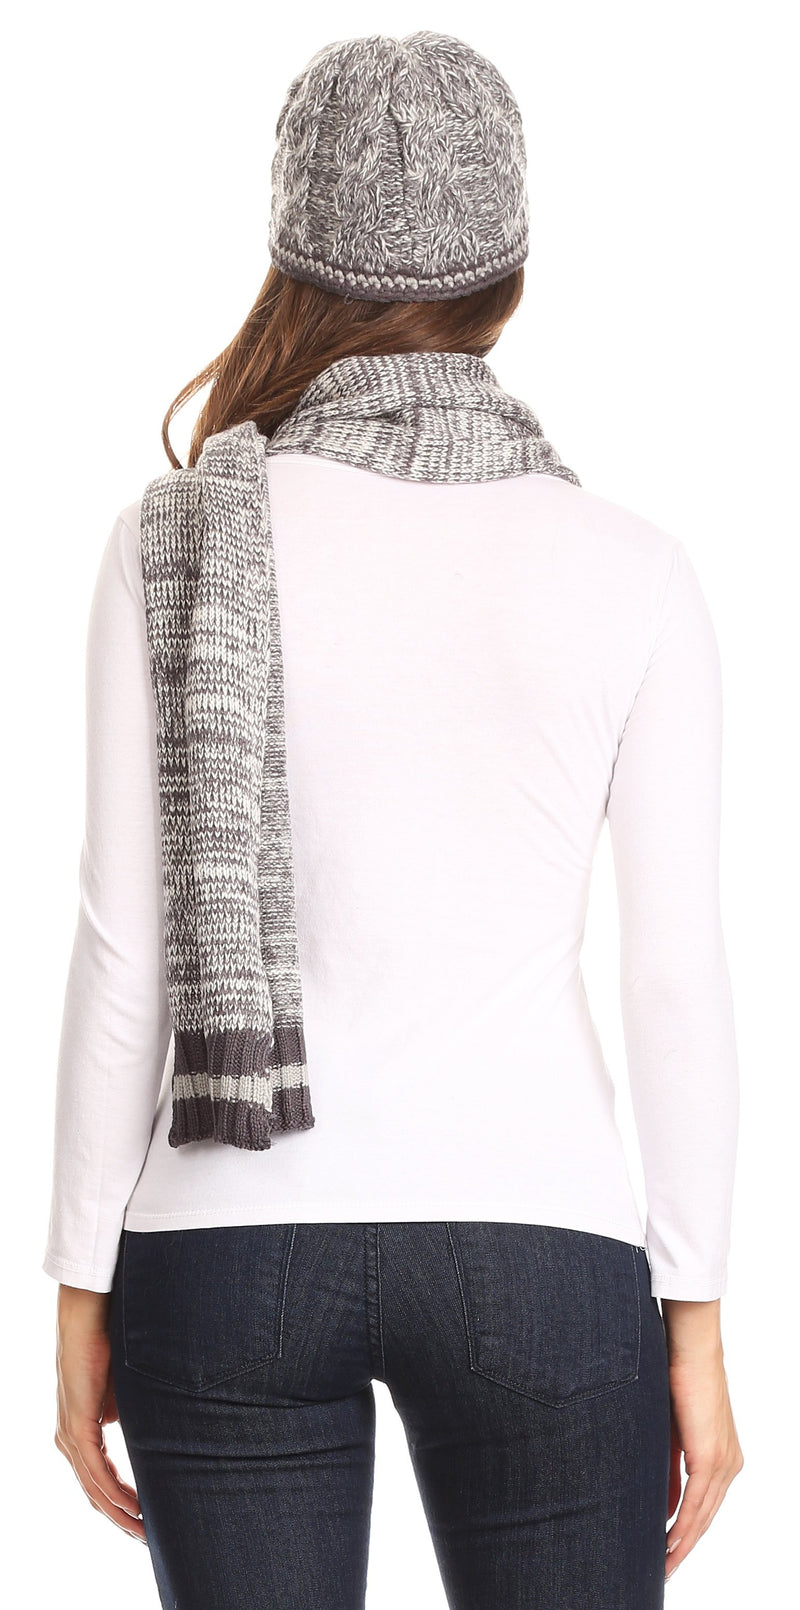 Sakkas Theo Unisex Warm Winter Heather and stripes Knit Hat & Scarf Set